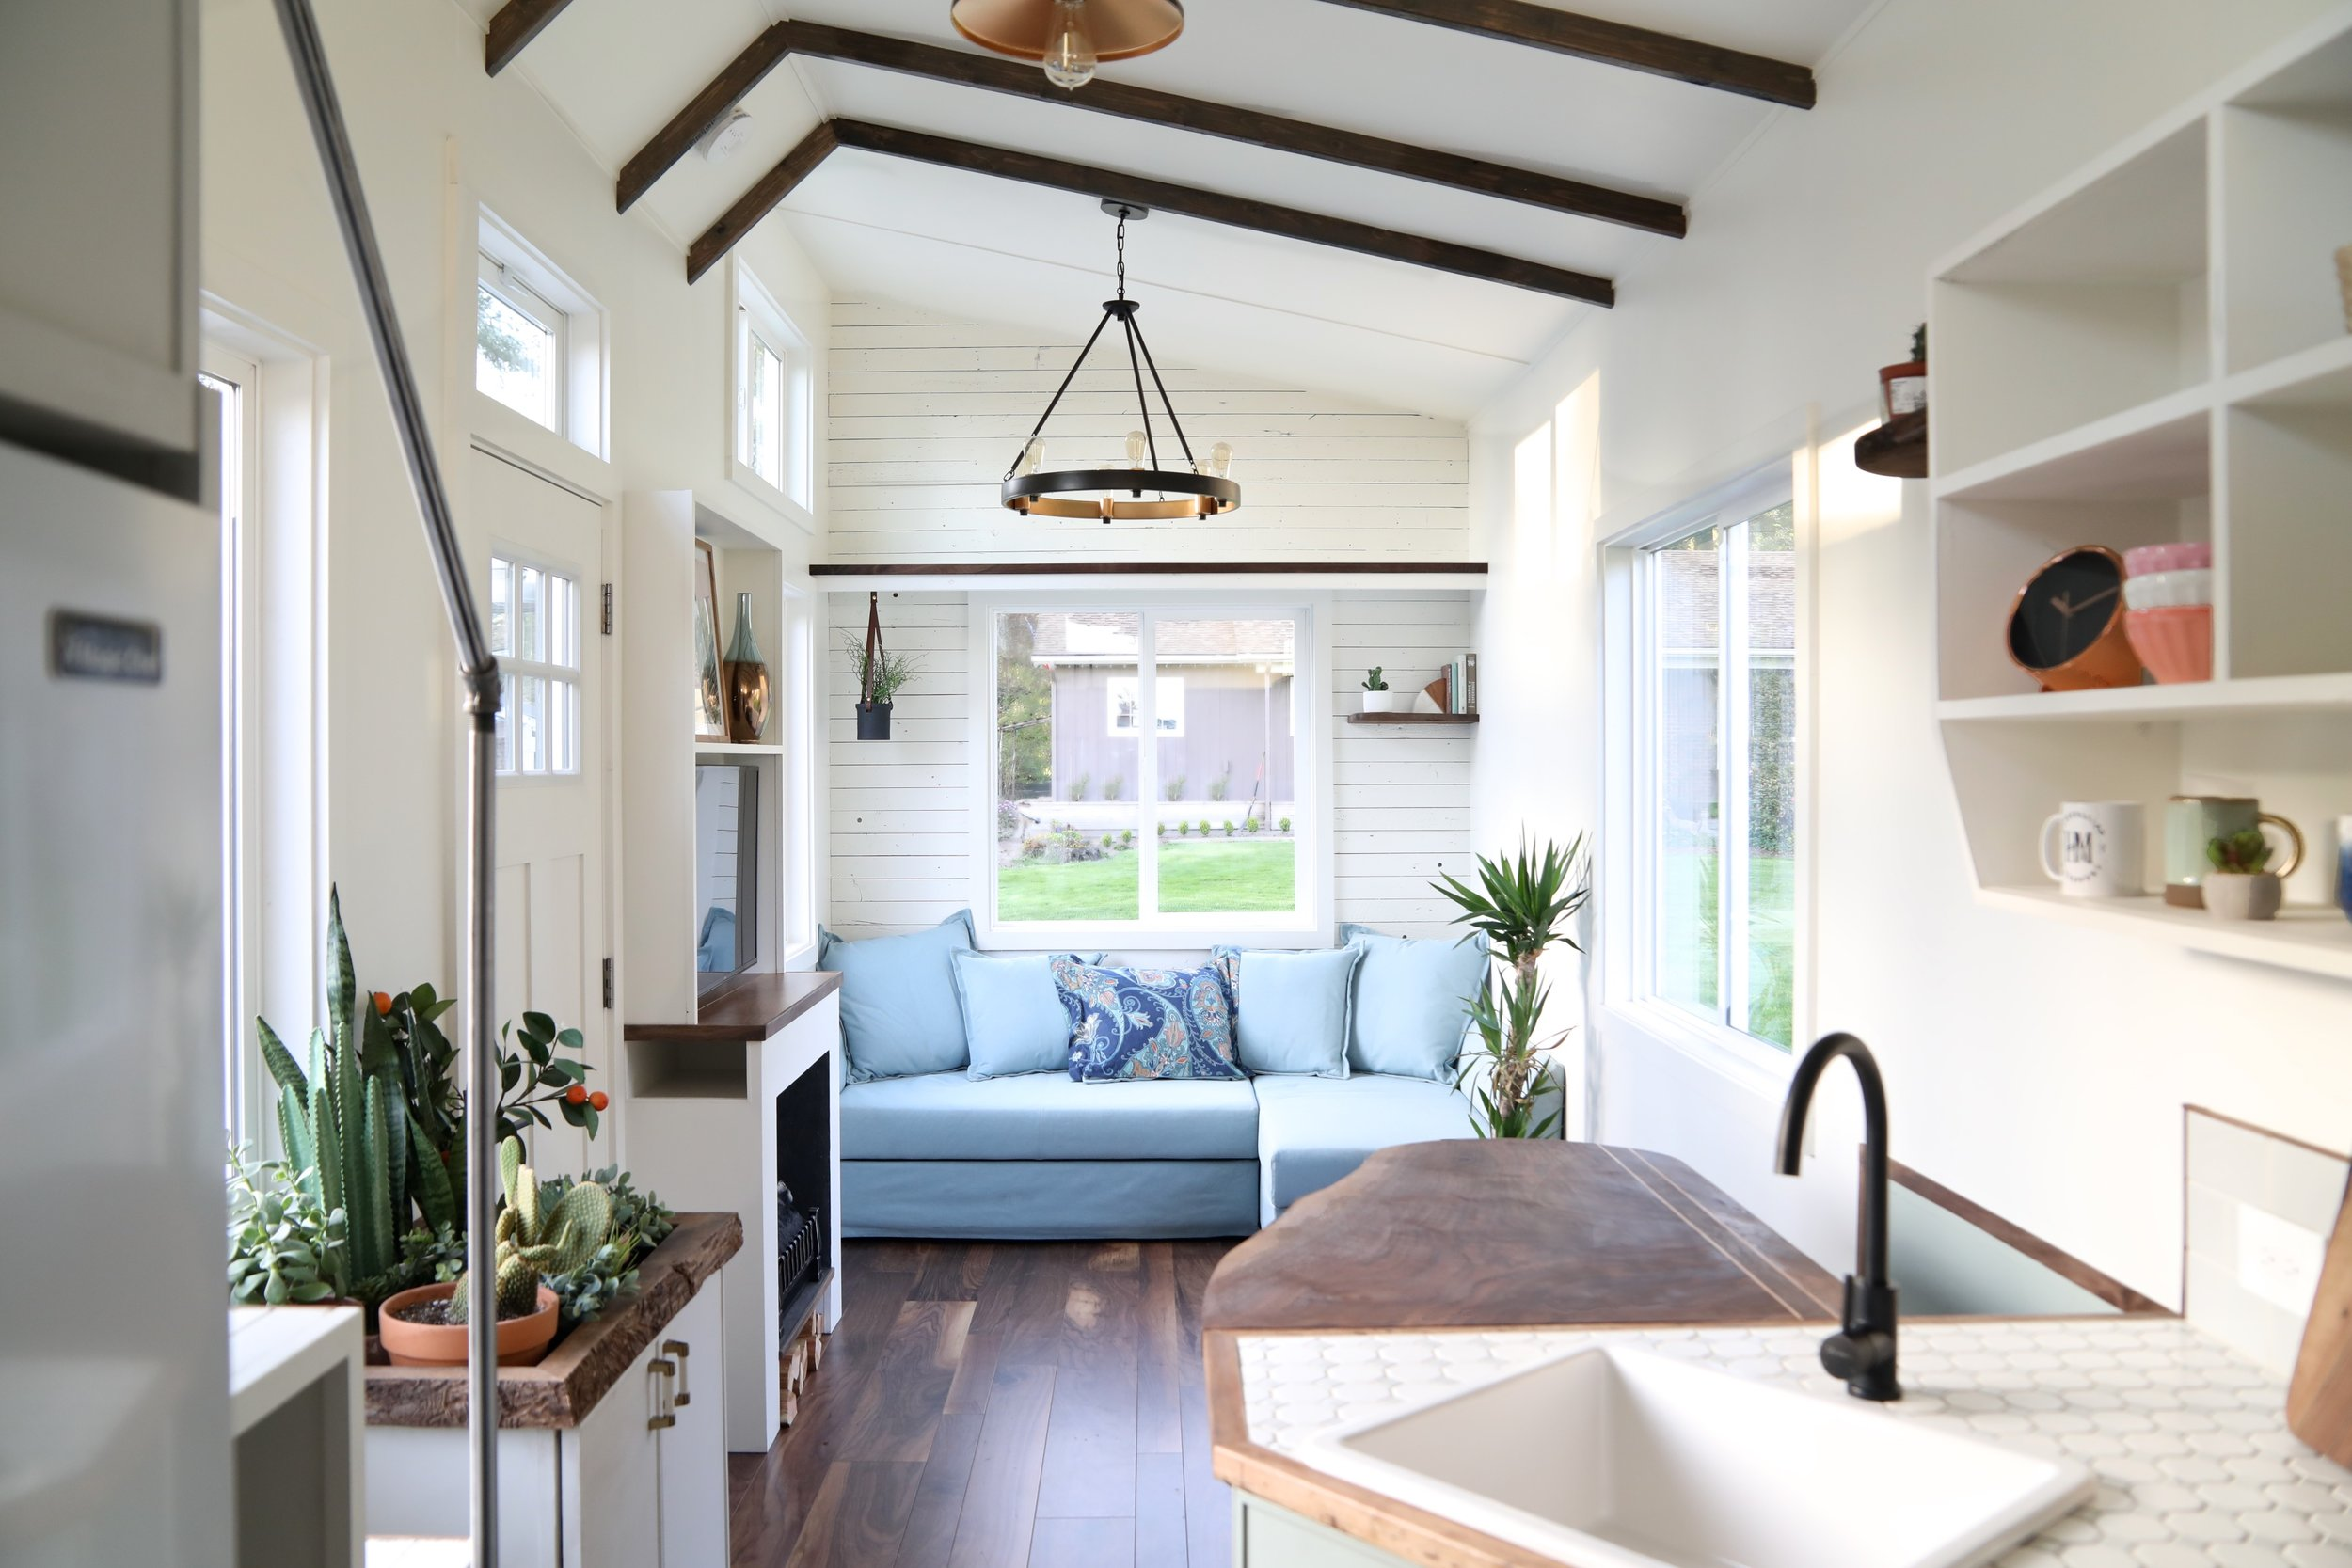 Royal Pioneer Tiny Home by Handcrafted Movement